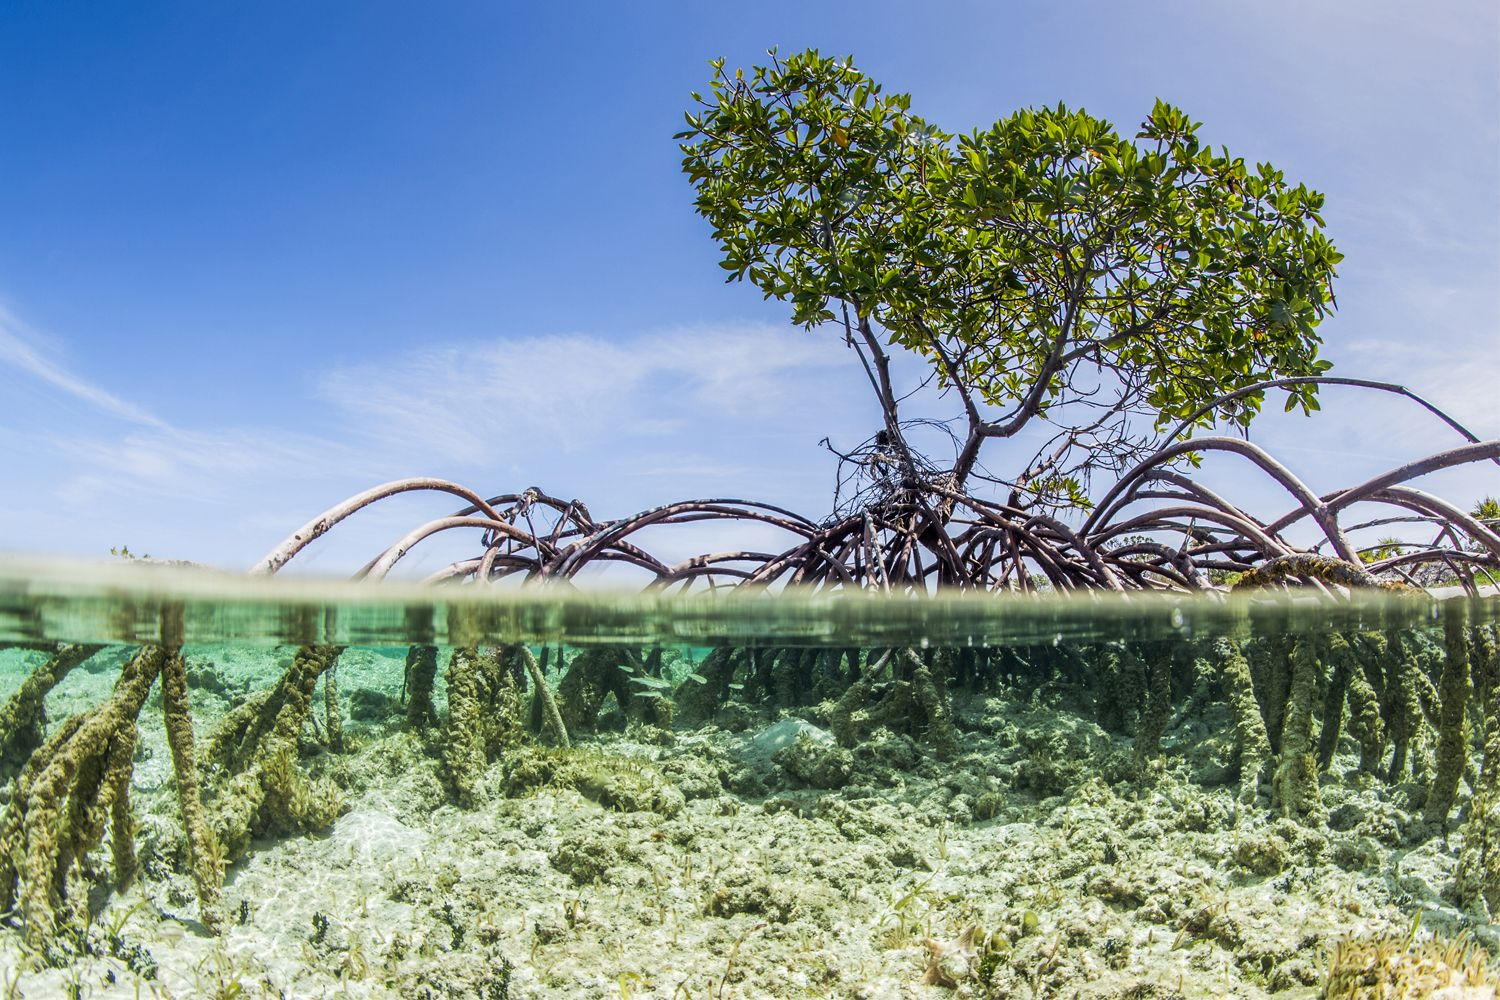 Over and under water photograph of a mangrove tree in clear tropical waters with blue sky in background